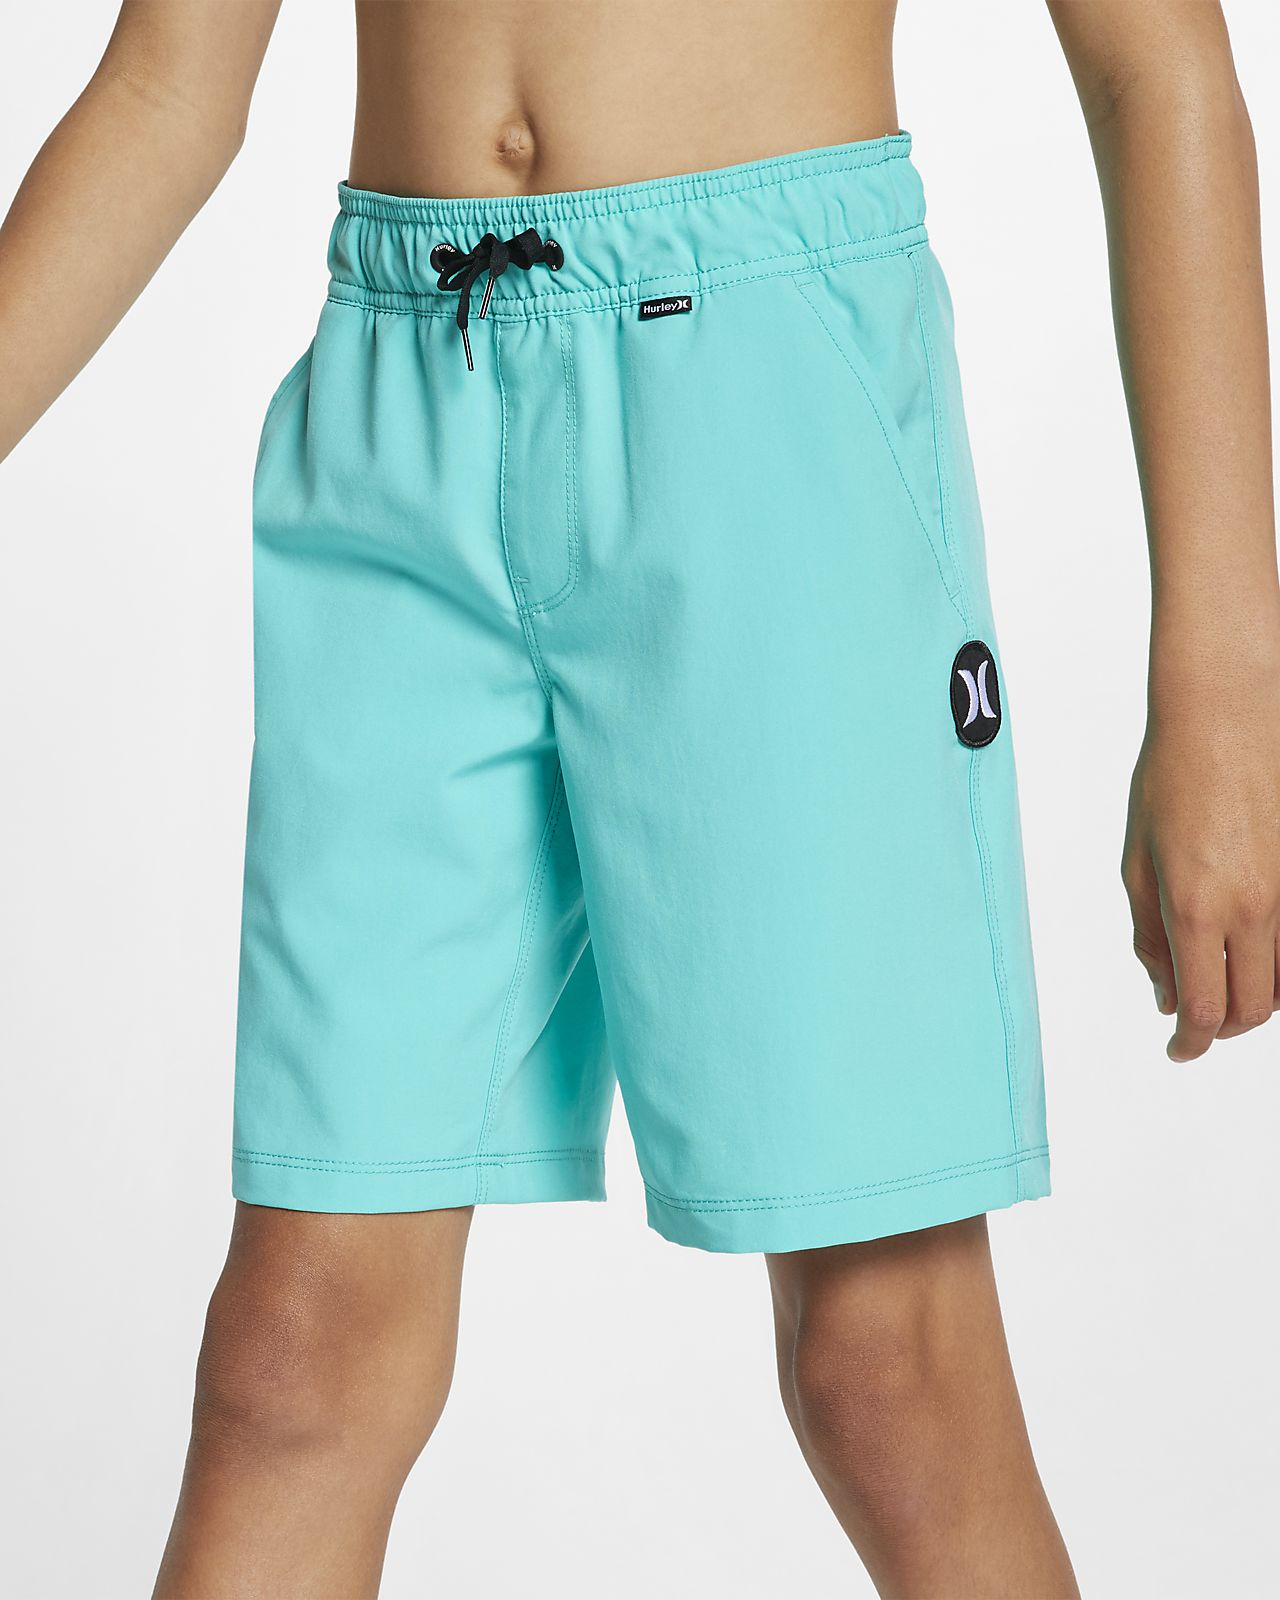 Hurley One and Only Volley-surfershorts (41 cm) til drenge